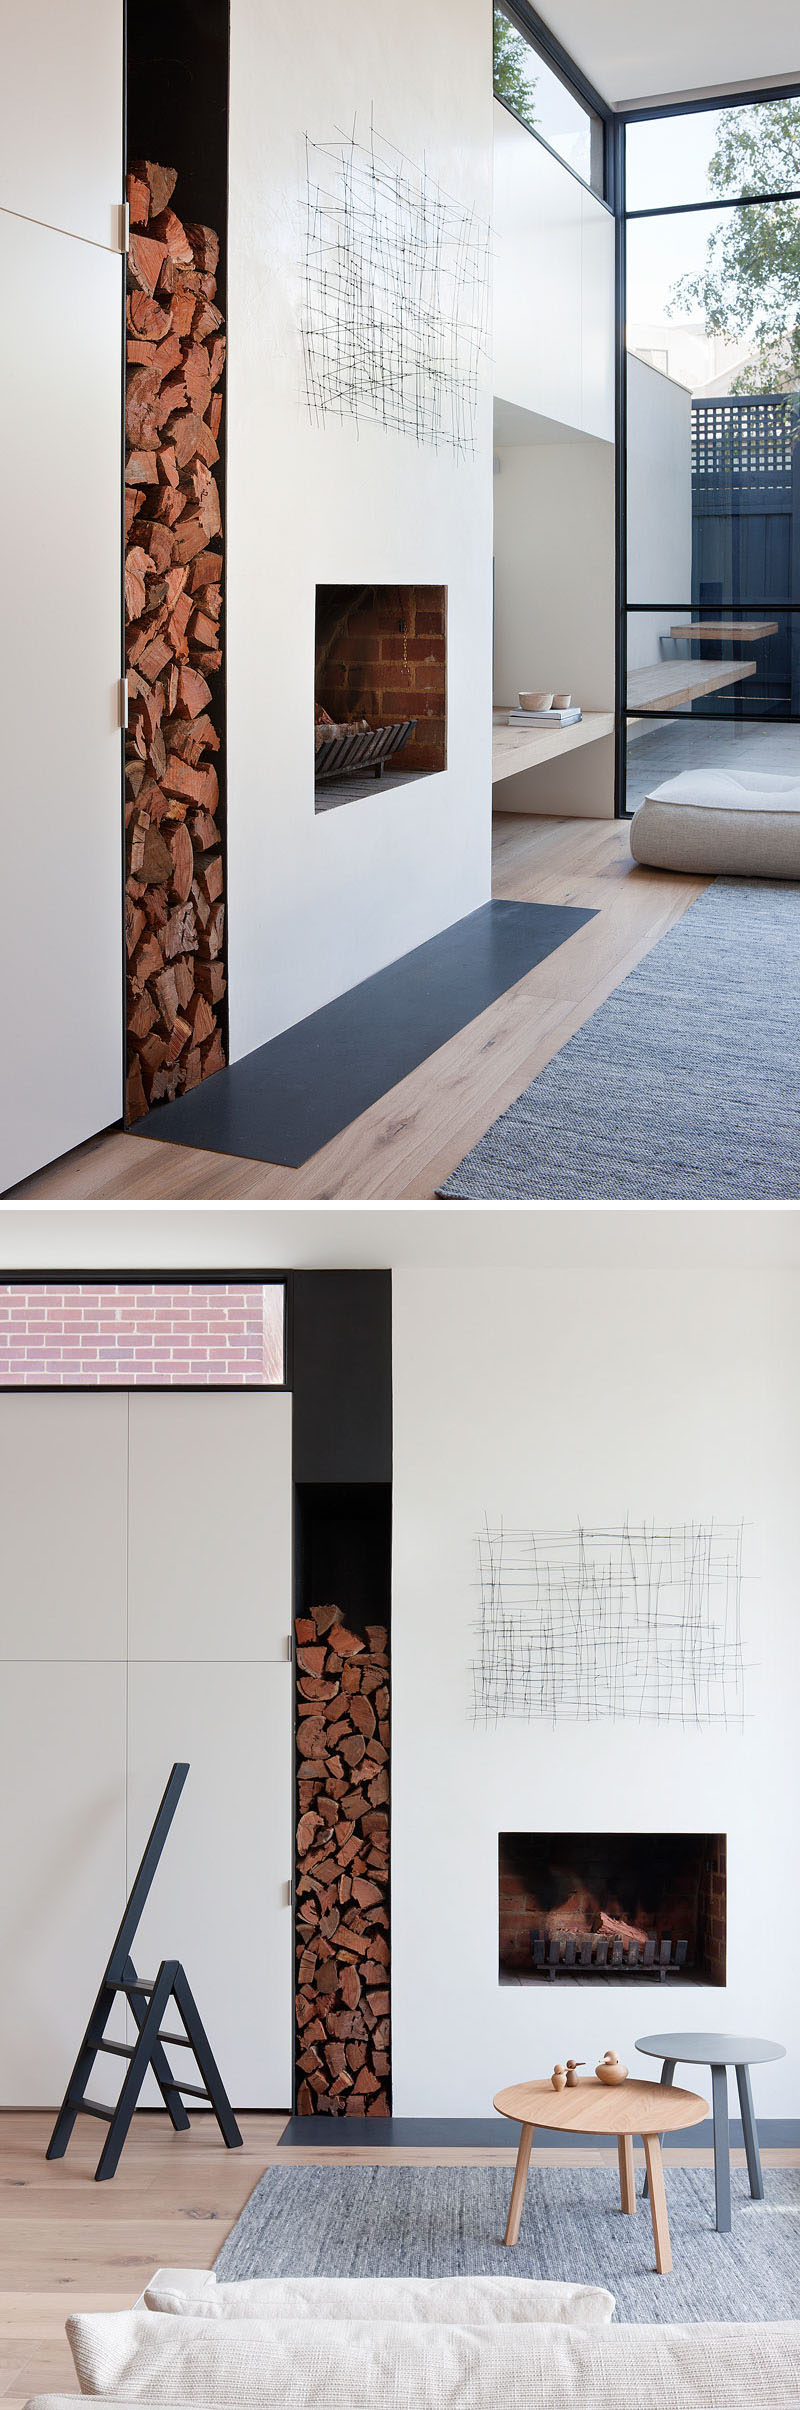 In this modern living room, a wood shelf lines up with the bench in the courtyard, while a built-in fireplace and with brick details, as well as a void for wood storage sit flush with the cabinets that lead into the kitchen. #WoodShelf #Fireplace #WoodStorage #WhiteCabinets